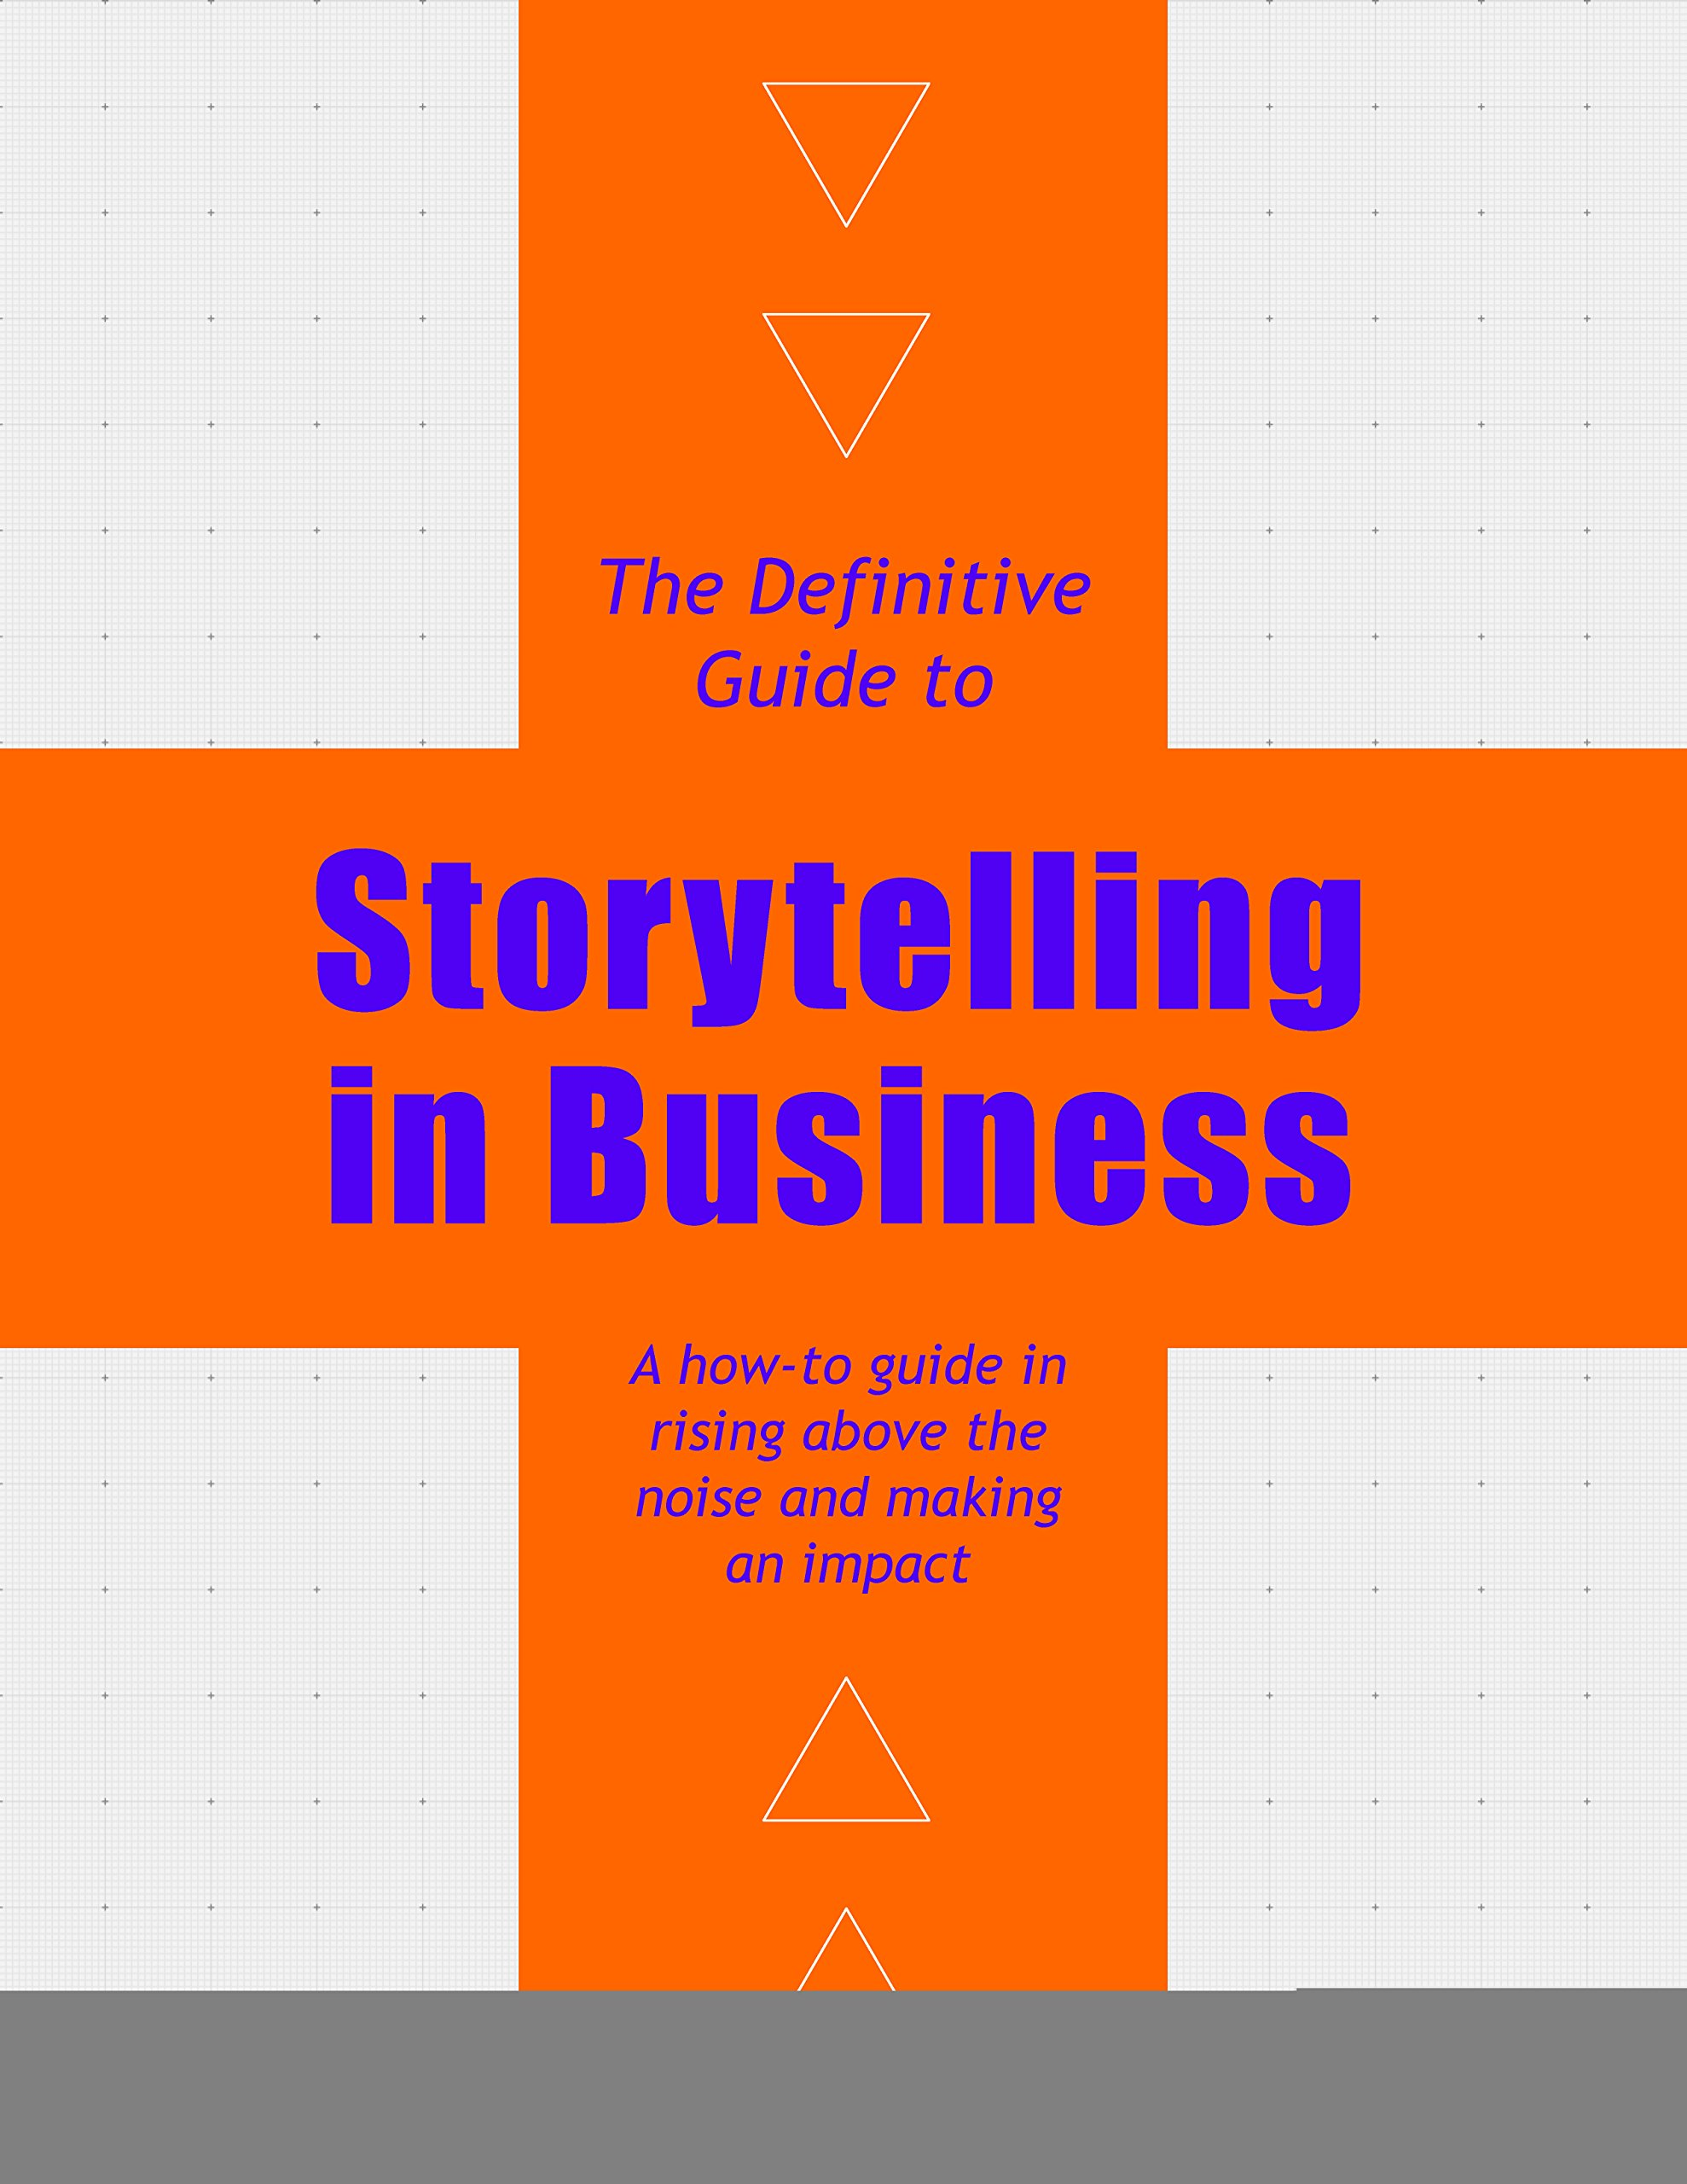 The Definitive Guide to Storytelling in Business: A how-to guide in rising above the noise and making an impact